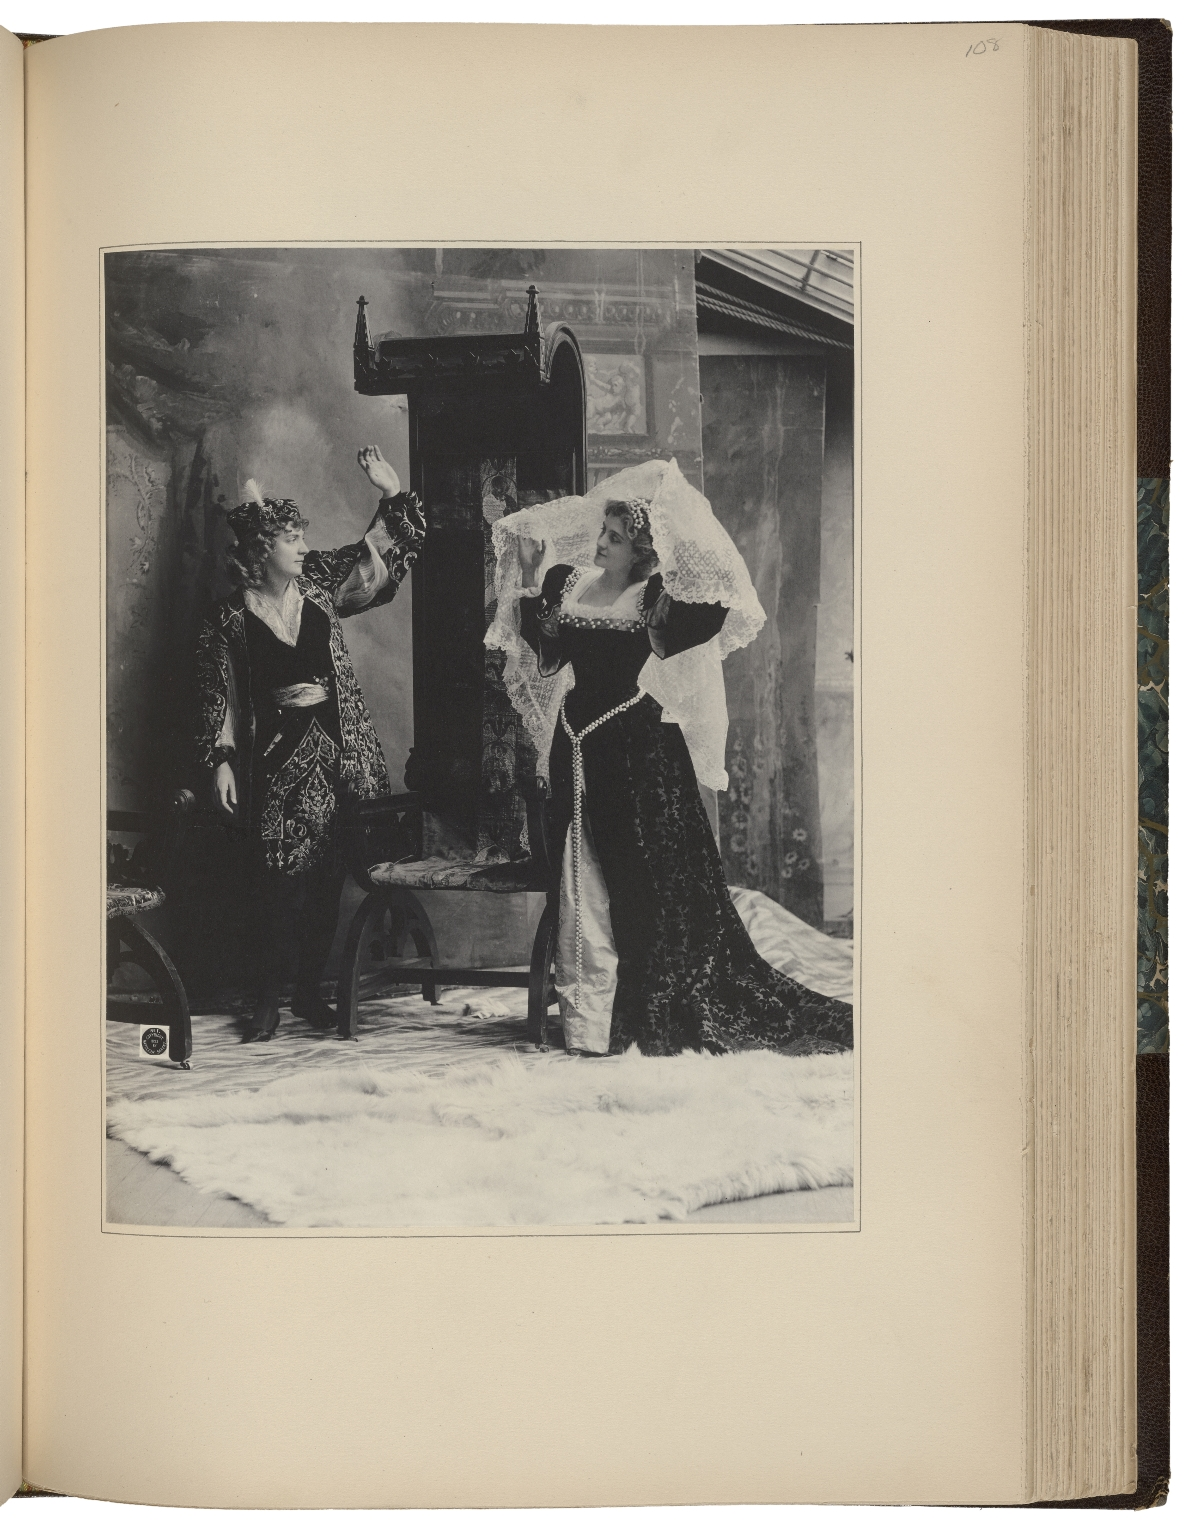 [Twelfth night] Tvvelfe night, or, What you will / by William Shakspere ; arranged to be played in four acts, by Augustin Daly ; printed from the prompt book, and as produced at Daly's Theatre, February 21st, 1893 ; with an introductory word by William Winter, Esq.